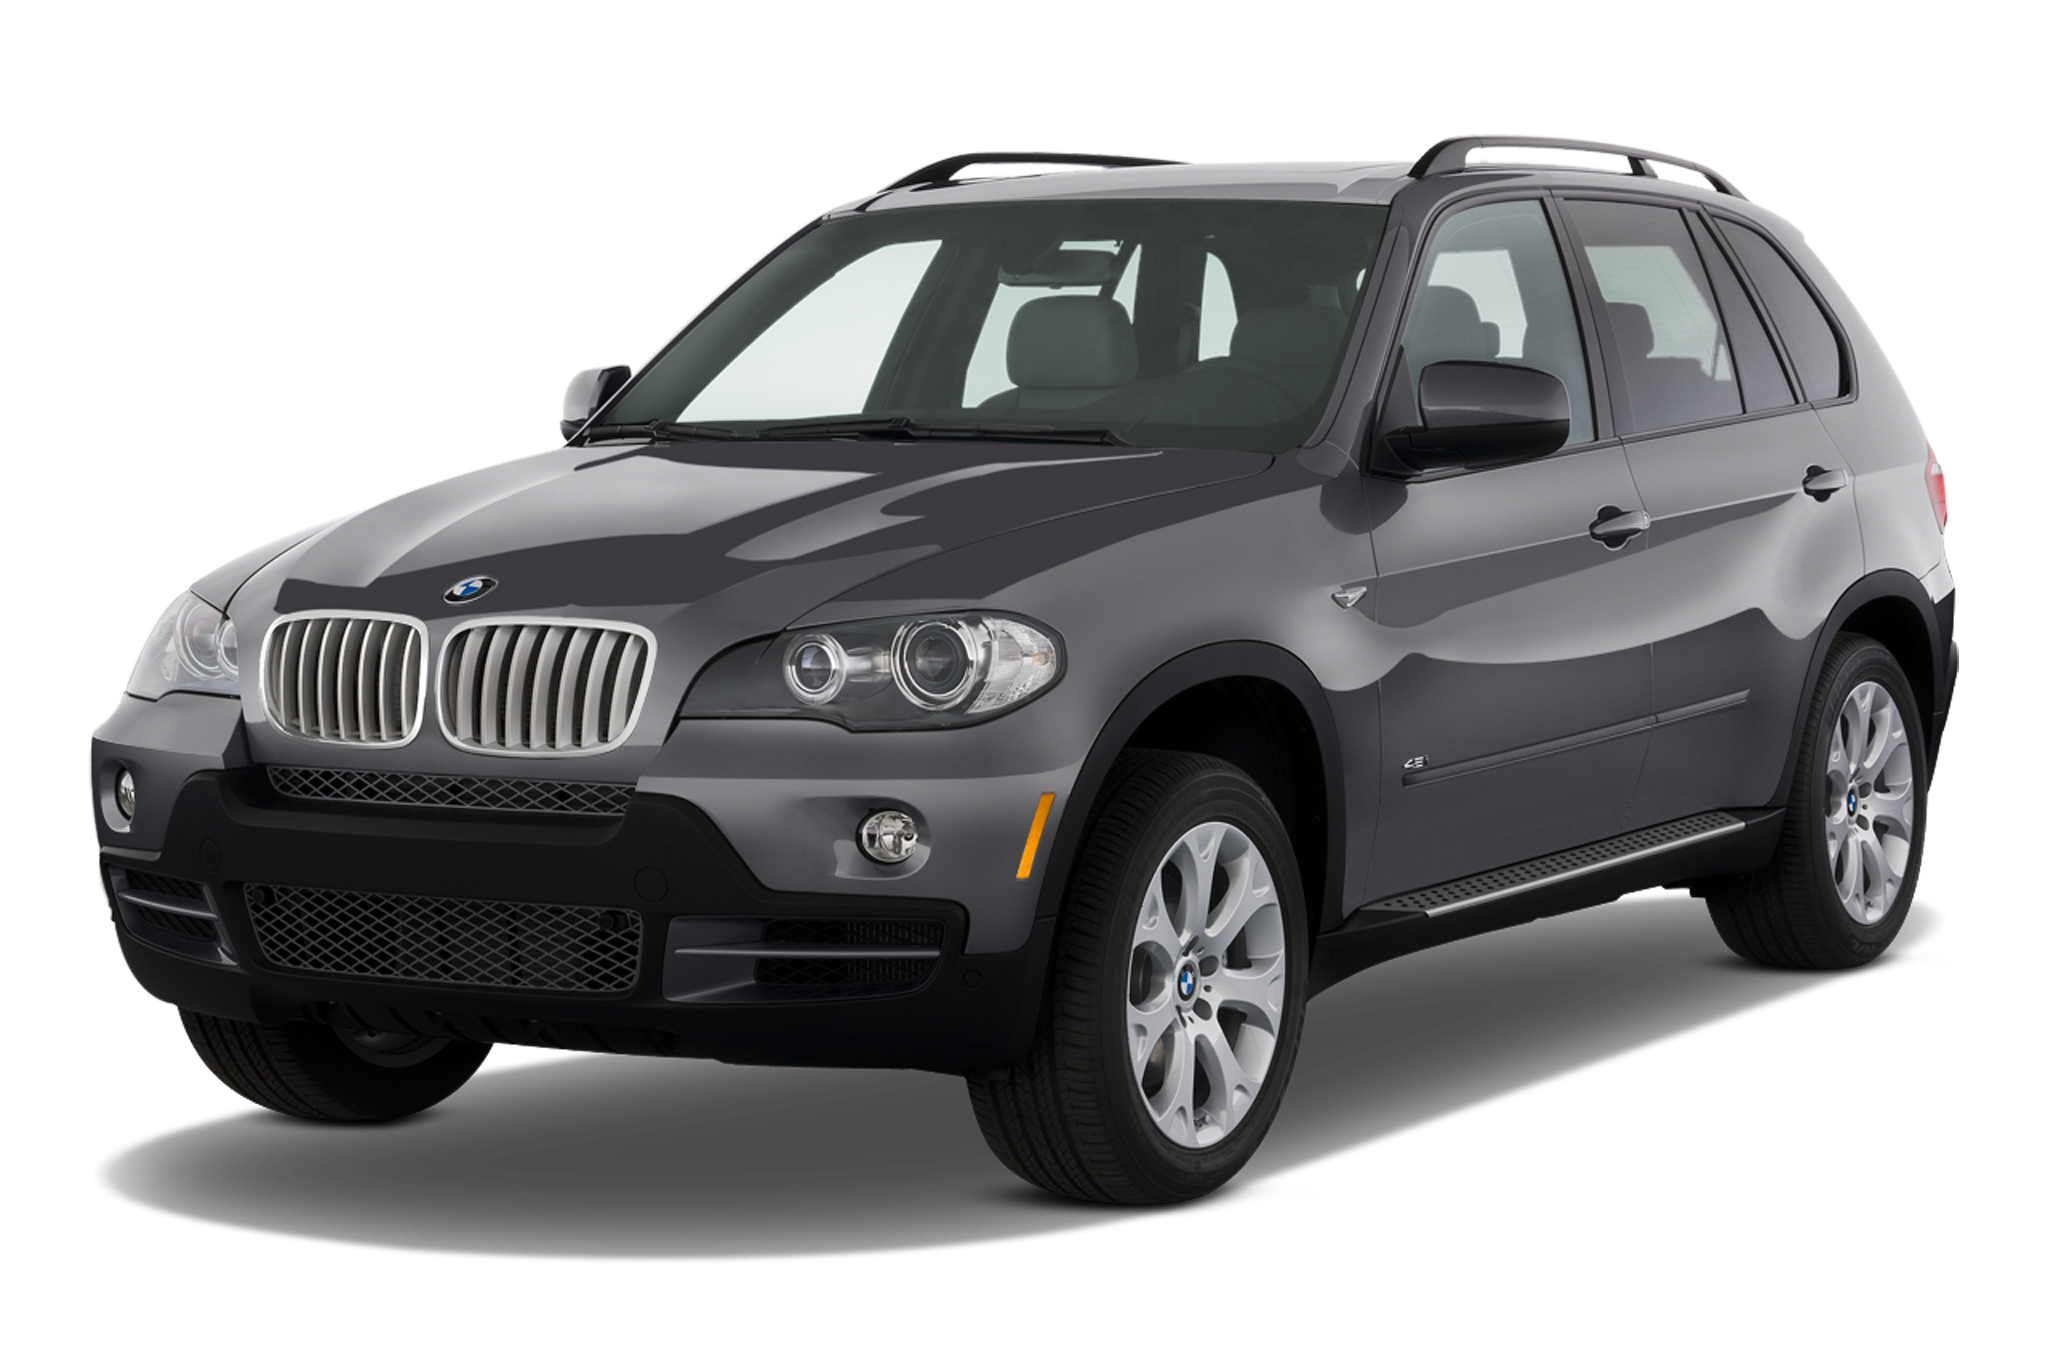 2010 bmw x5m and x6m 2009 sneak preview automobile. Black Bedroom Furniture Sets. Home Design Ideas